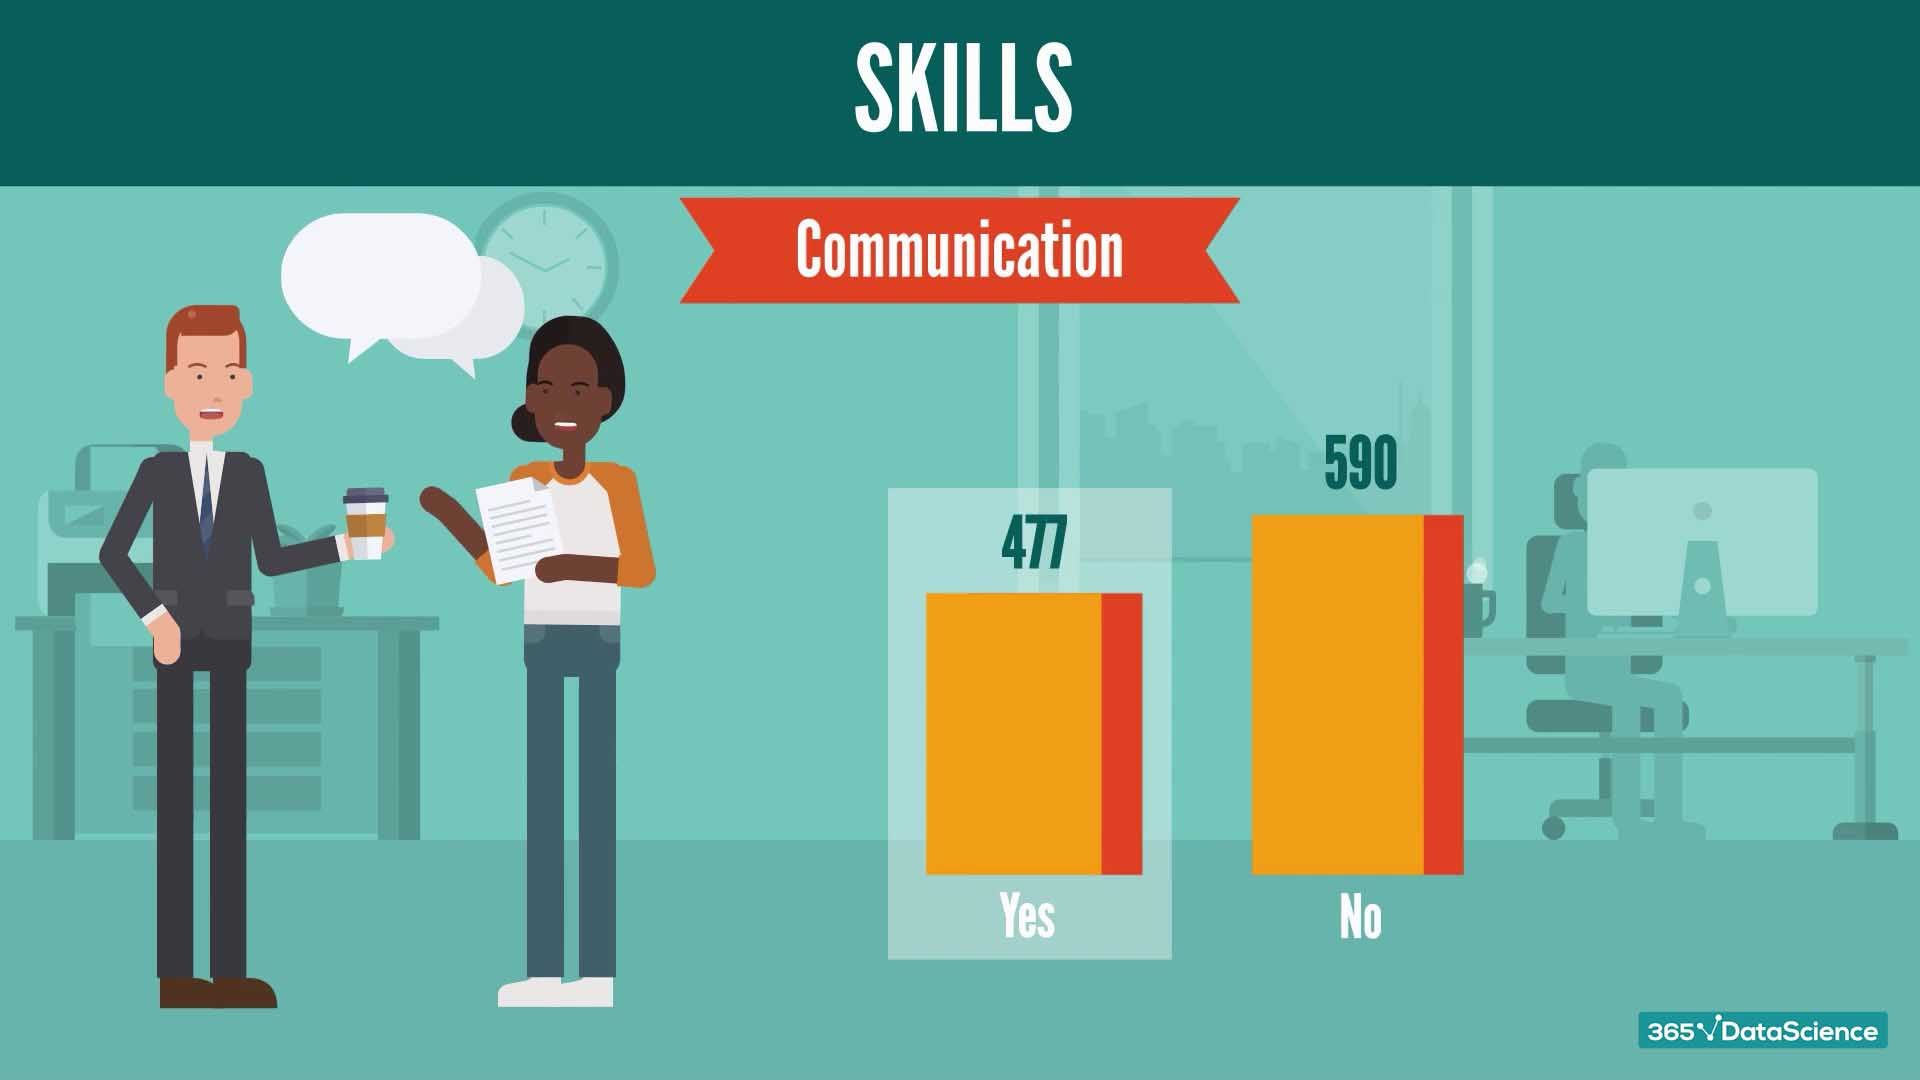 Communication skills required for Python job roles